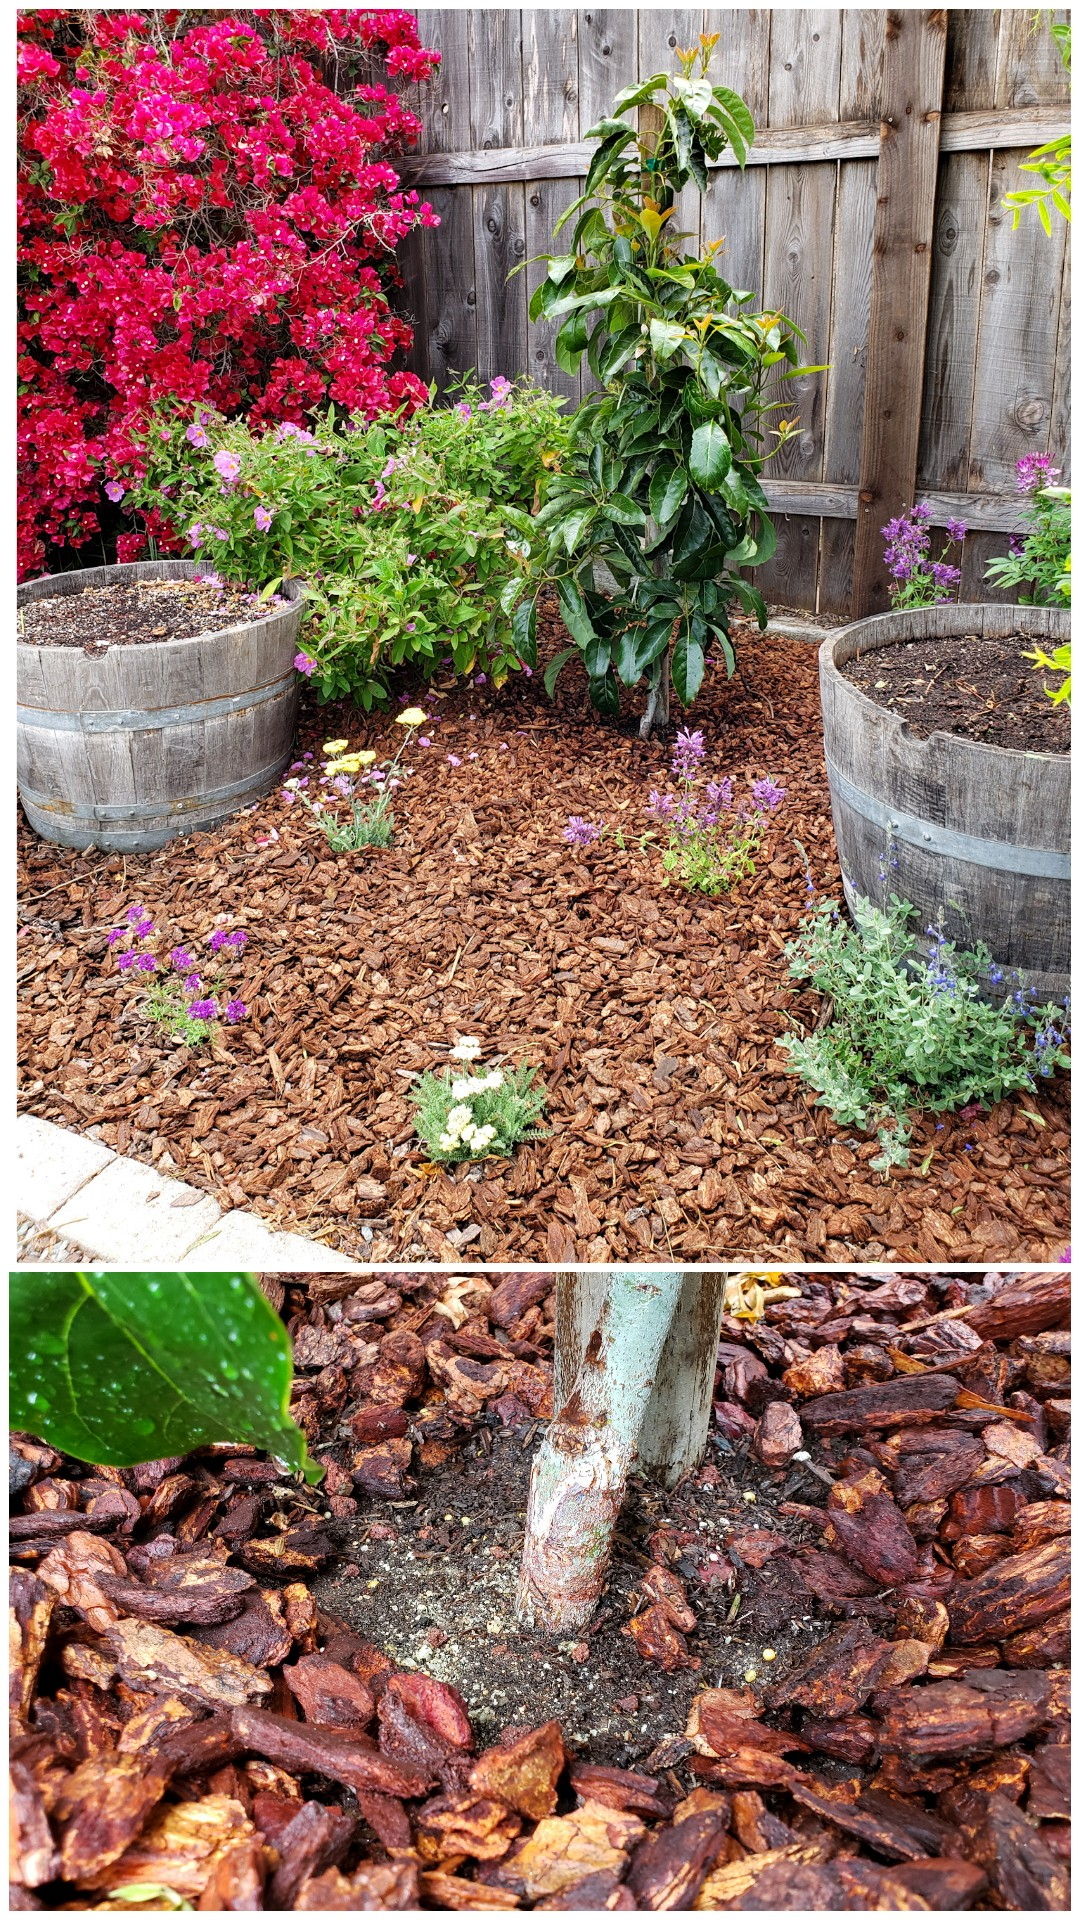 A two way image collage, the first is of a newly planted Fuerte avocado, it has been mulched with redwood bark and various perennials are planted around the vicinity. The second image shows a closeup of the the trunk of the tree at the soil line, showing that there is no mulch touching the tree which can cause rot and disease.